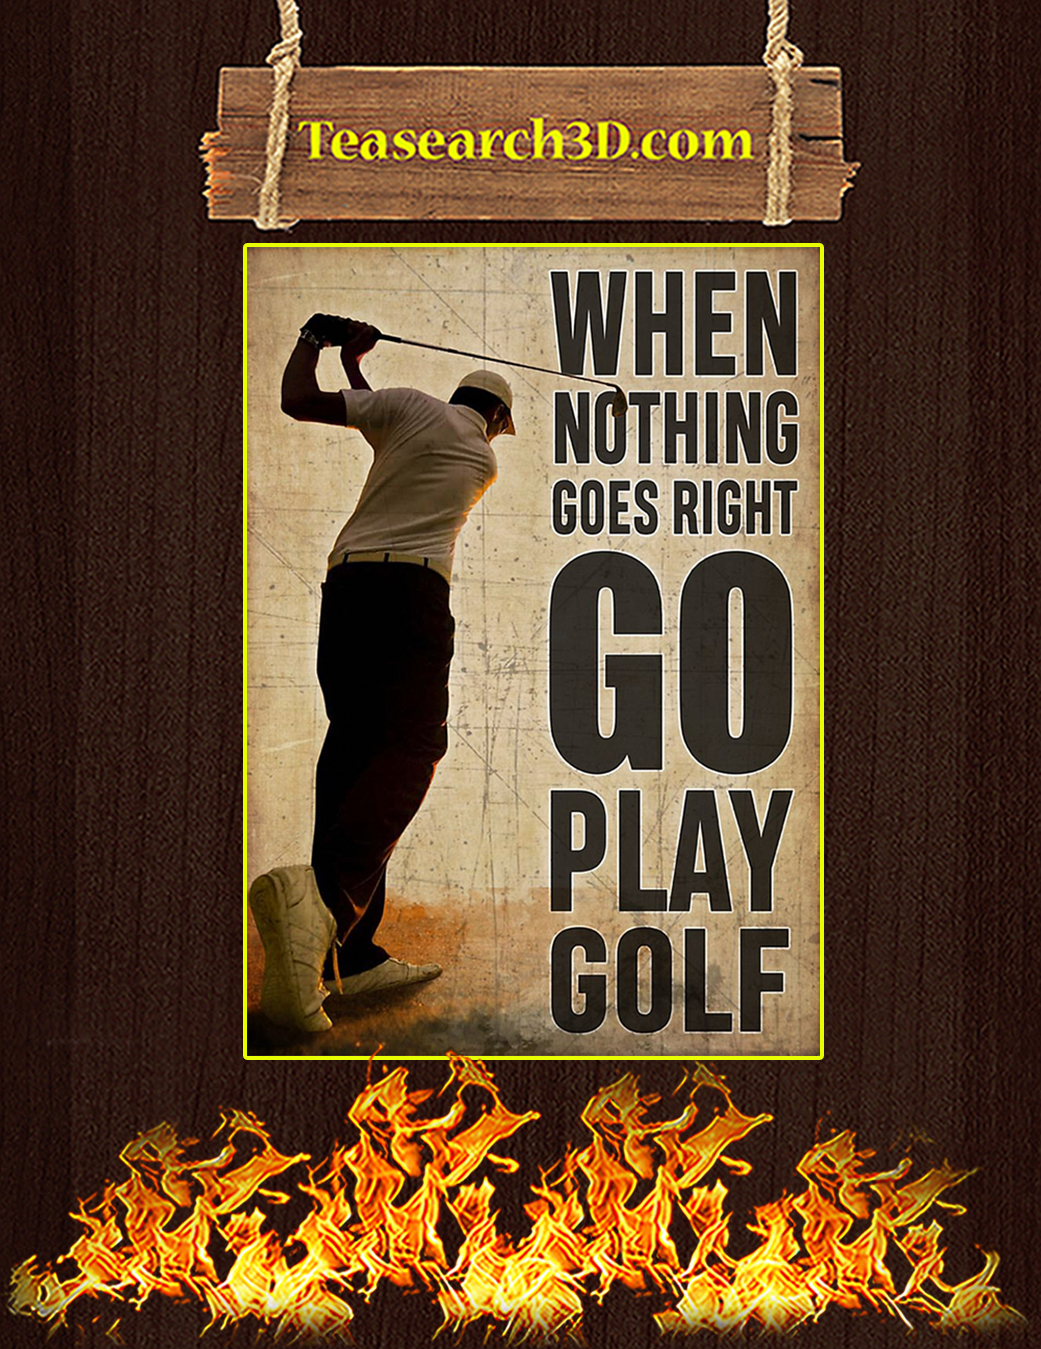 When nothing goes right go play golf poster A1